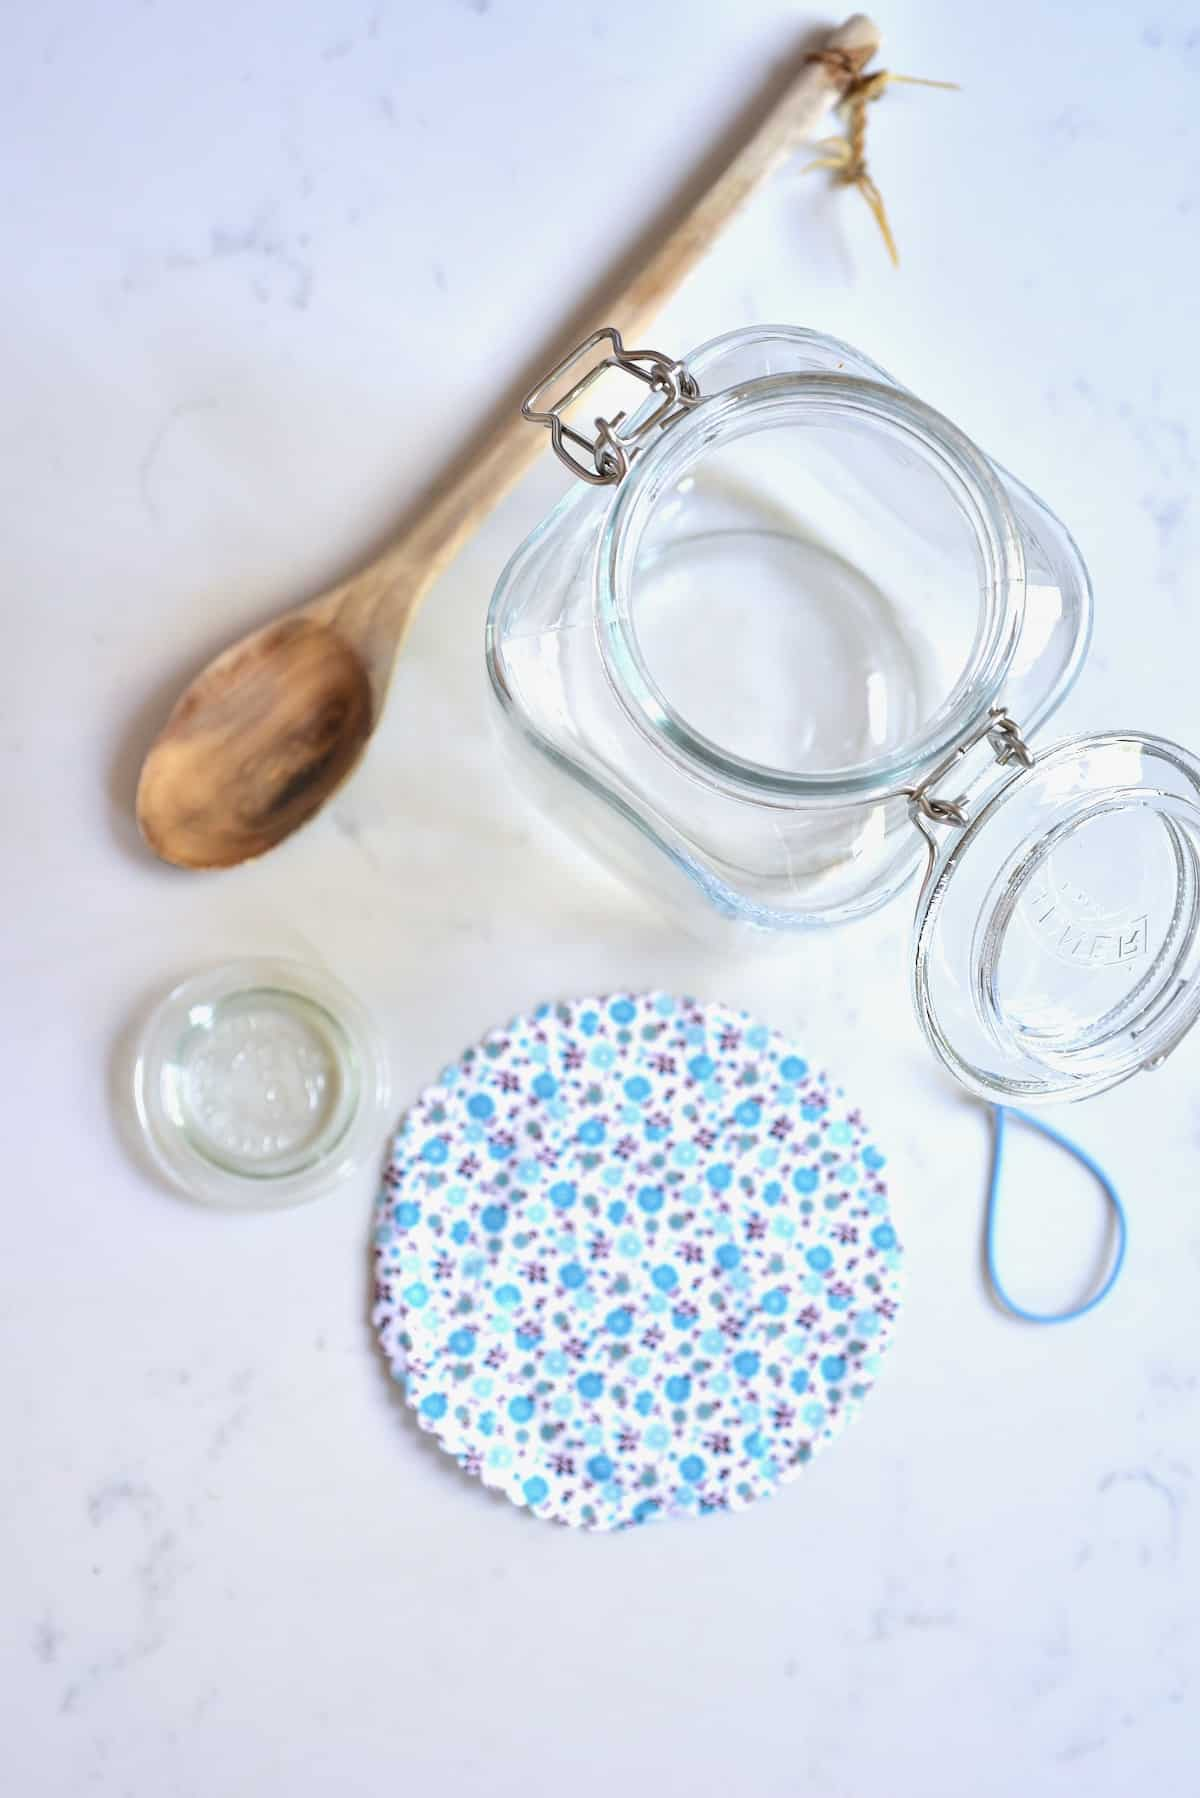 sterilised glass jar wooden spoon and a cloth cover